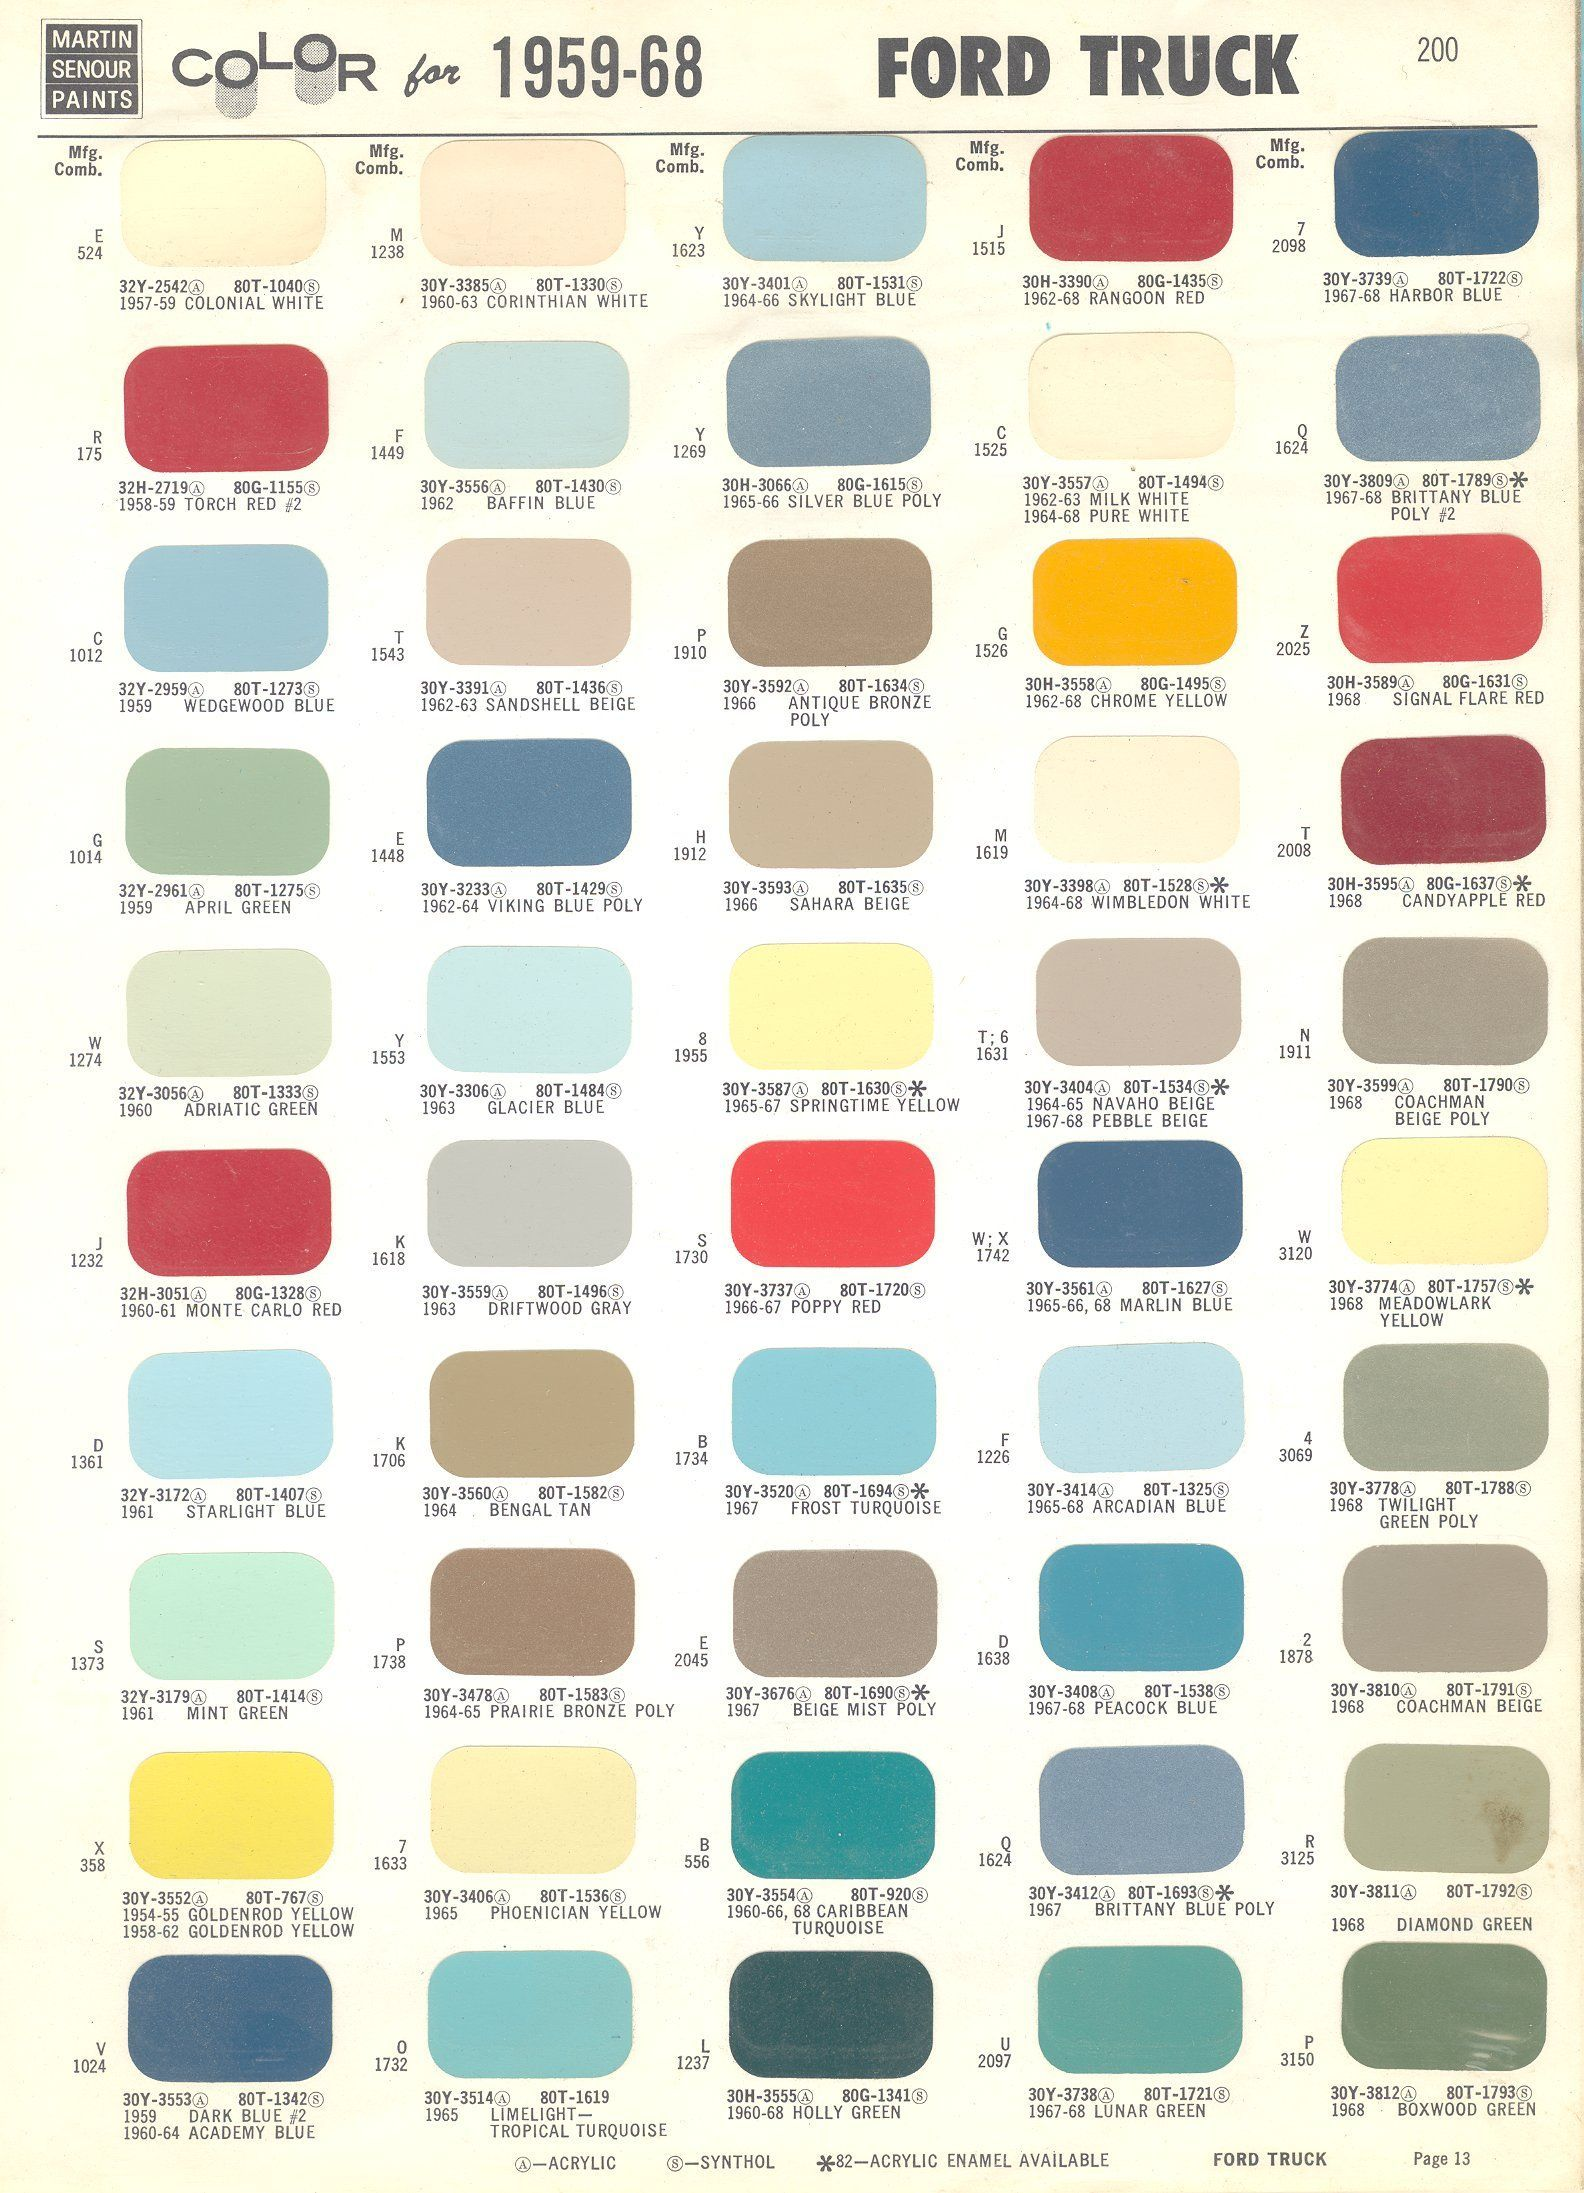 1968 Ford Color Chart | Color Chart for 1959 - 1968 Ford & Mercury